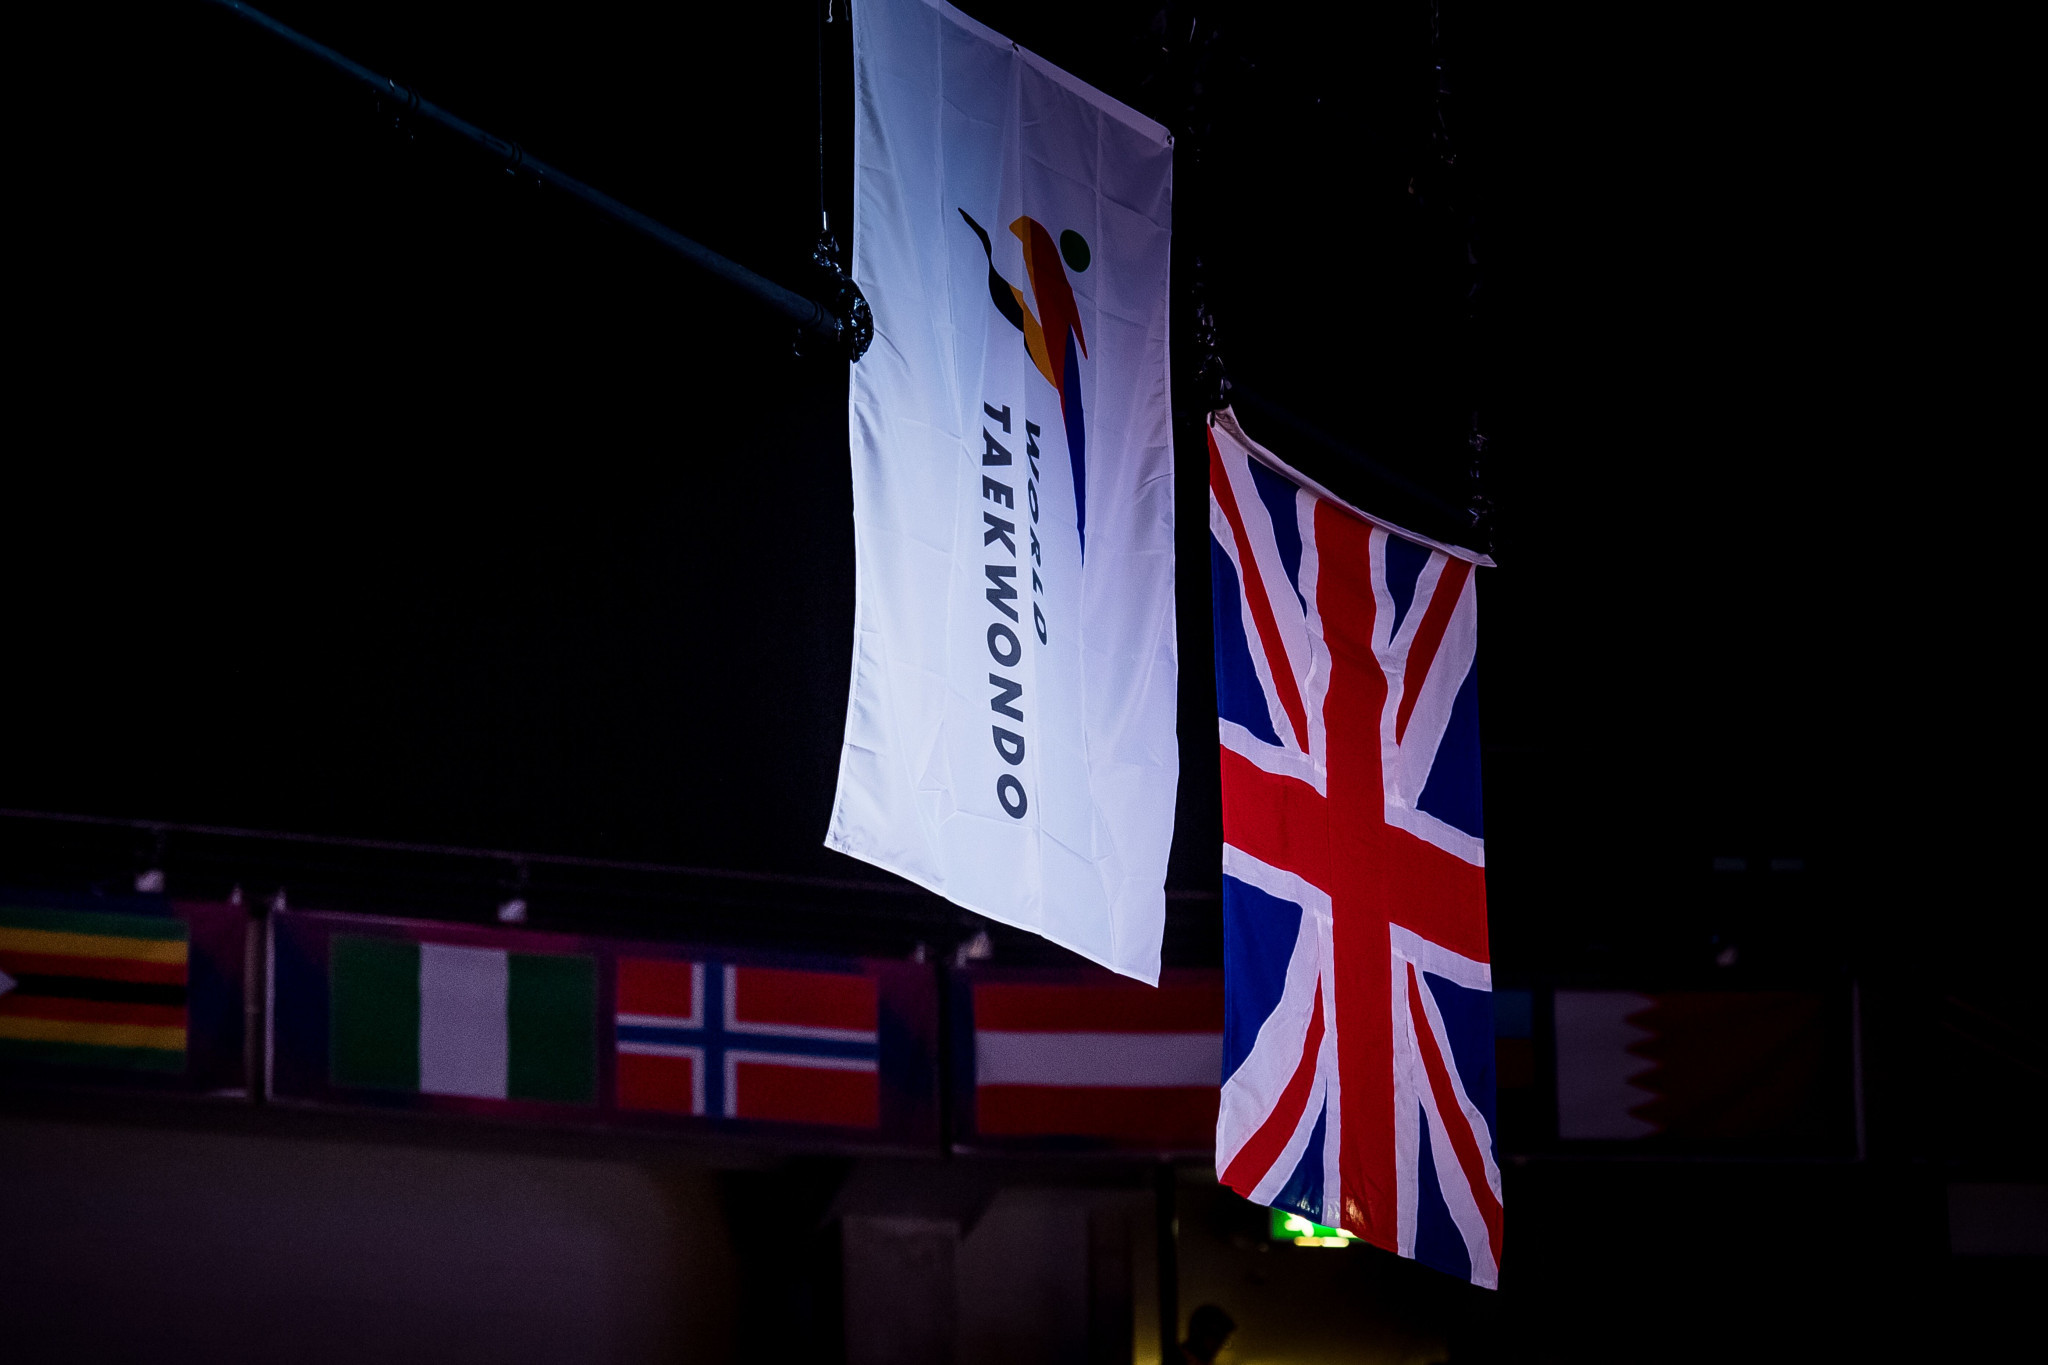 A refugee team is competing under the World Taekwondo flag at the World Championships ©World Taekwondo